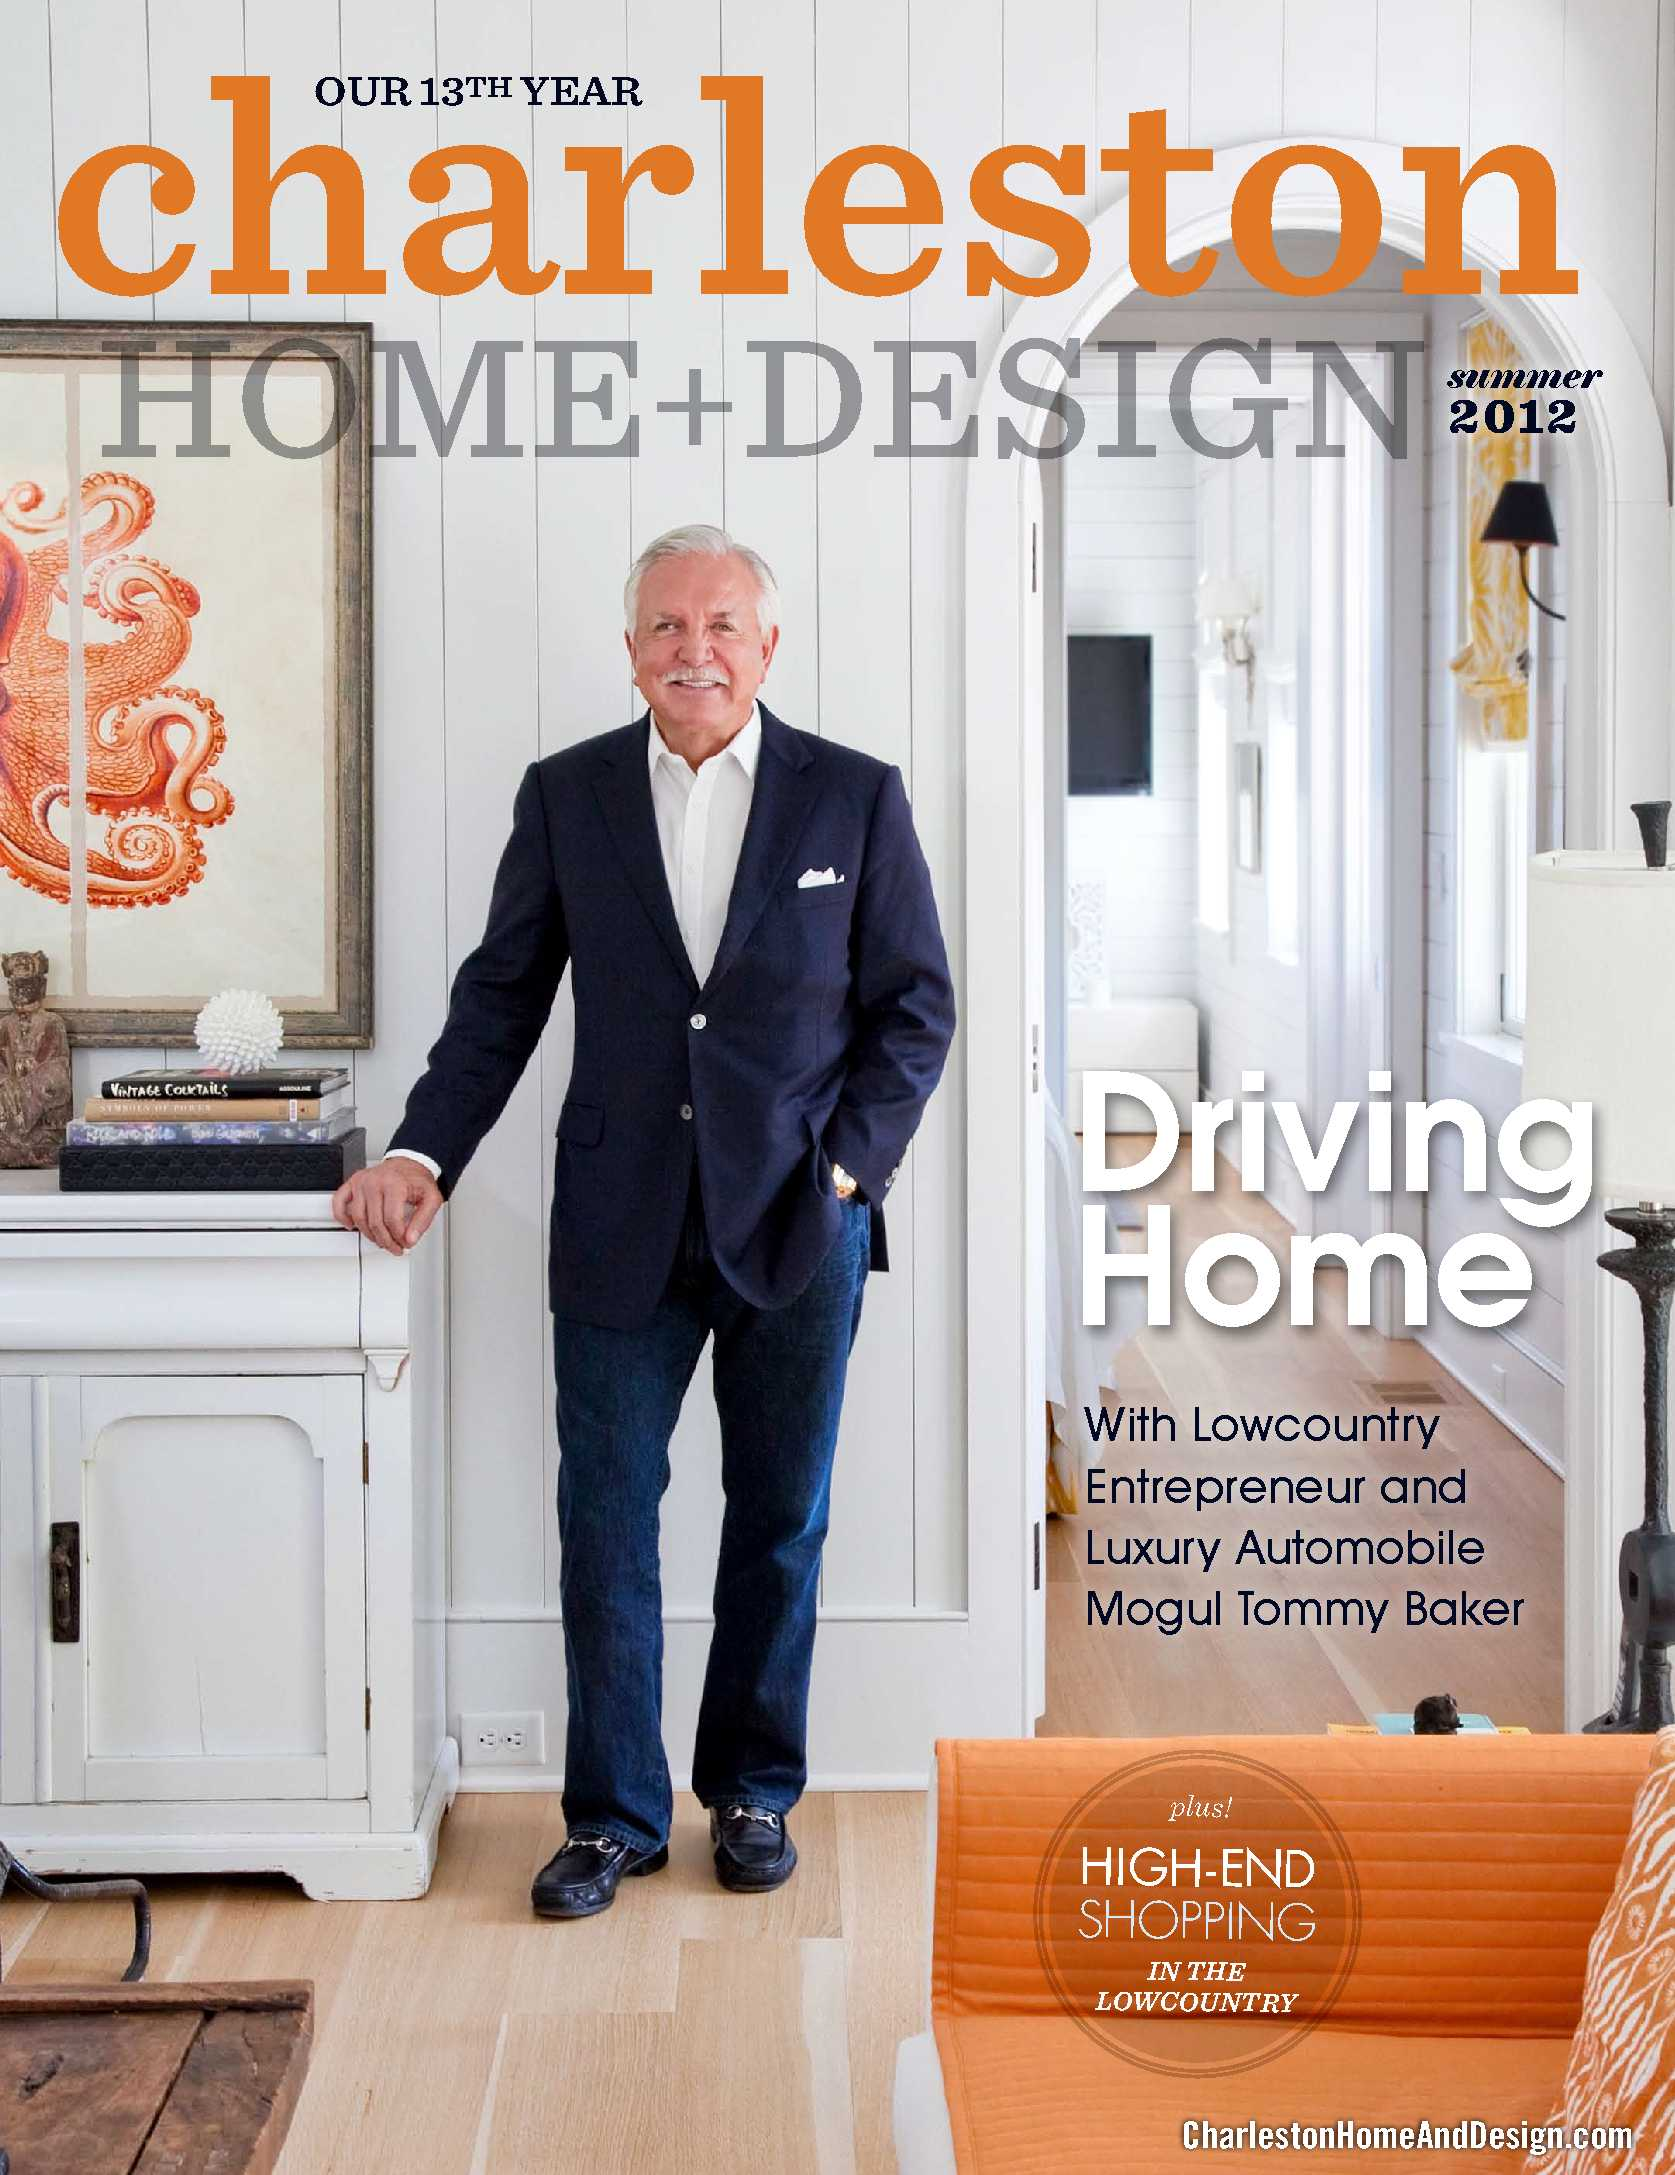 Baker Motor Company President Tommy Baker Featured On Charleston Home Design Magazine Cover